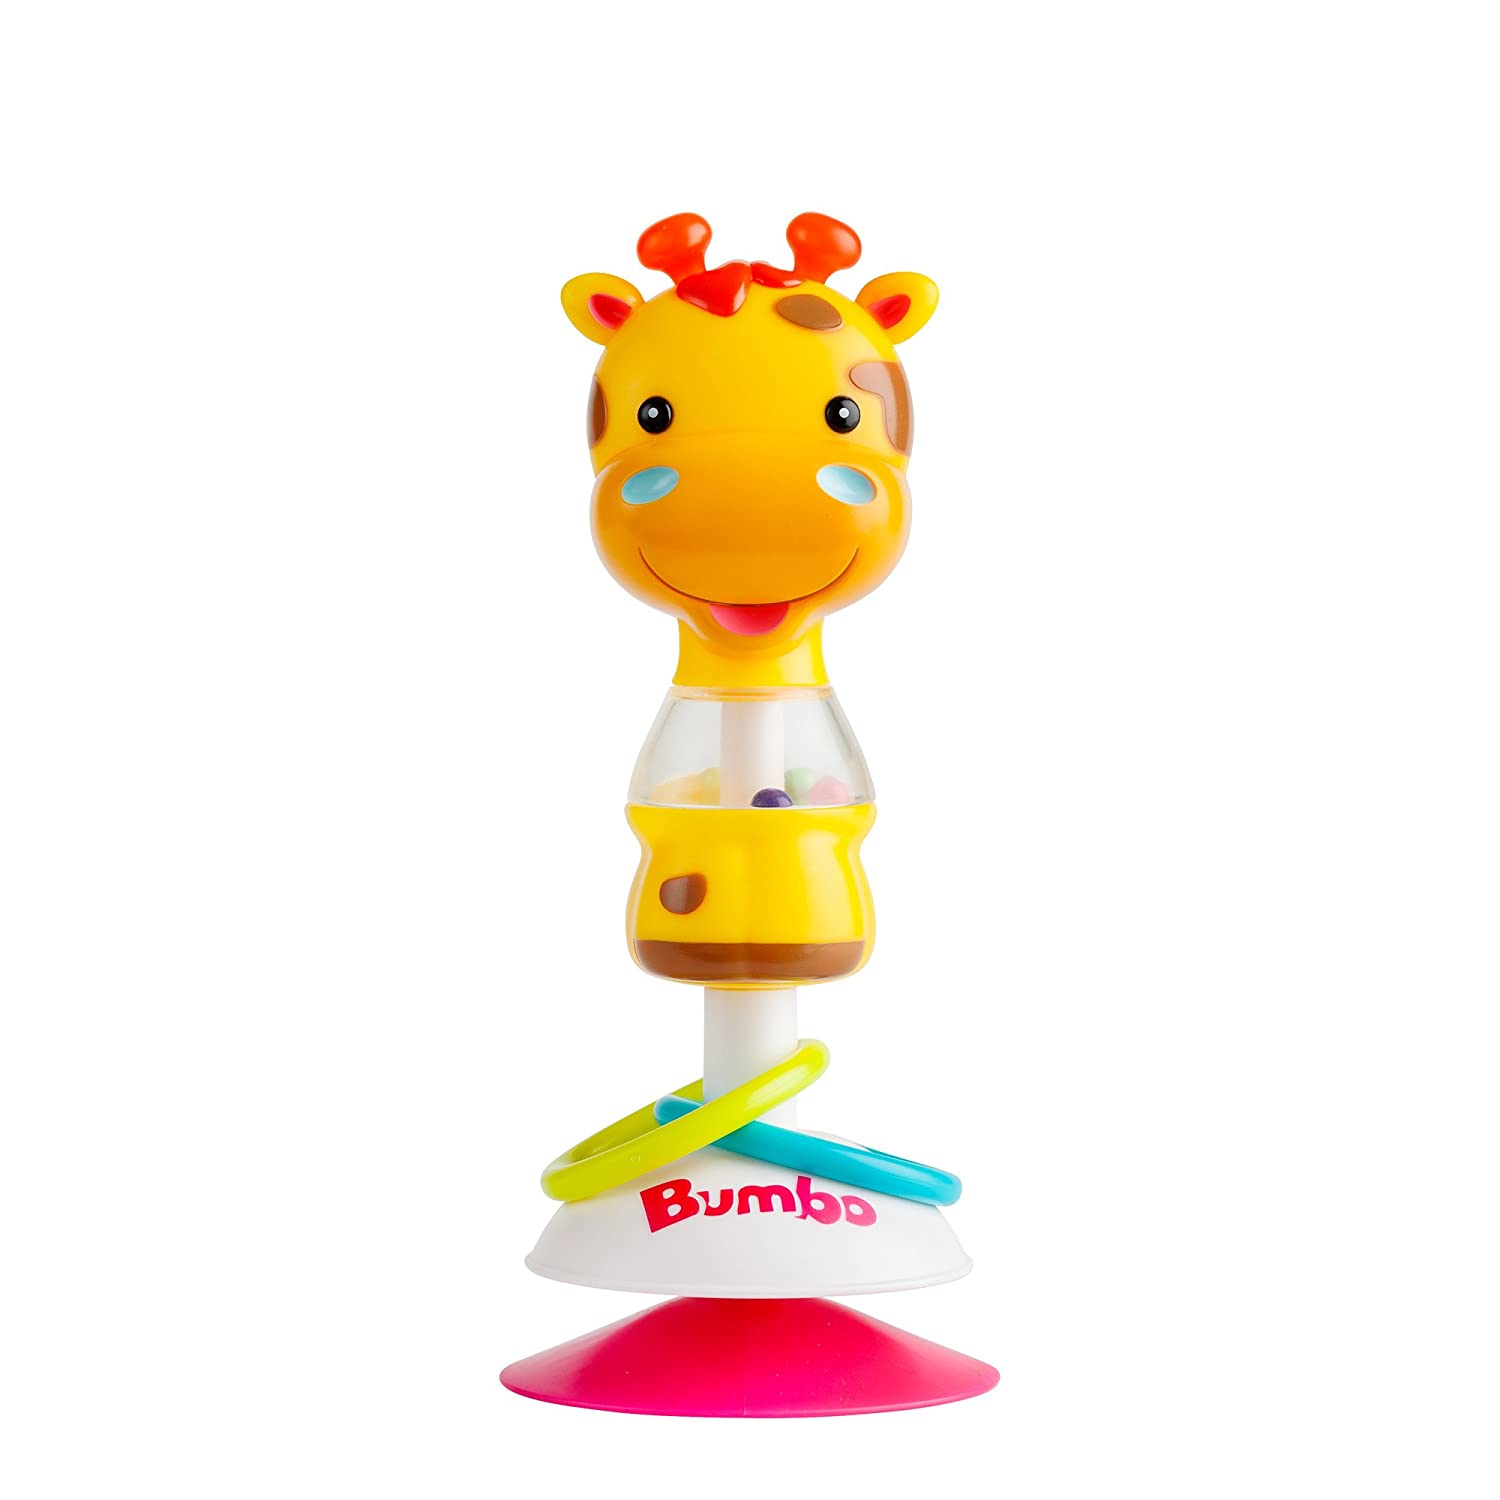 Bumbo Gwen the Giraffe Suction Toy for Kids